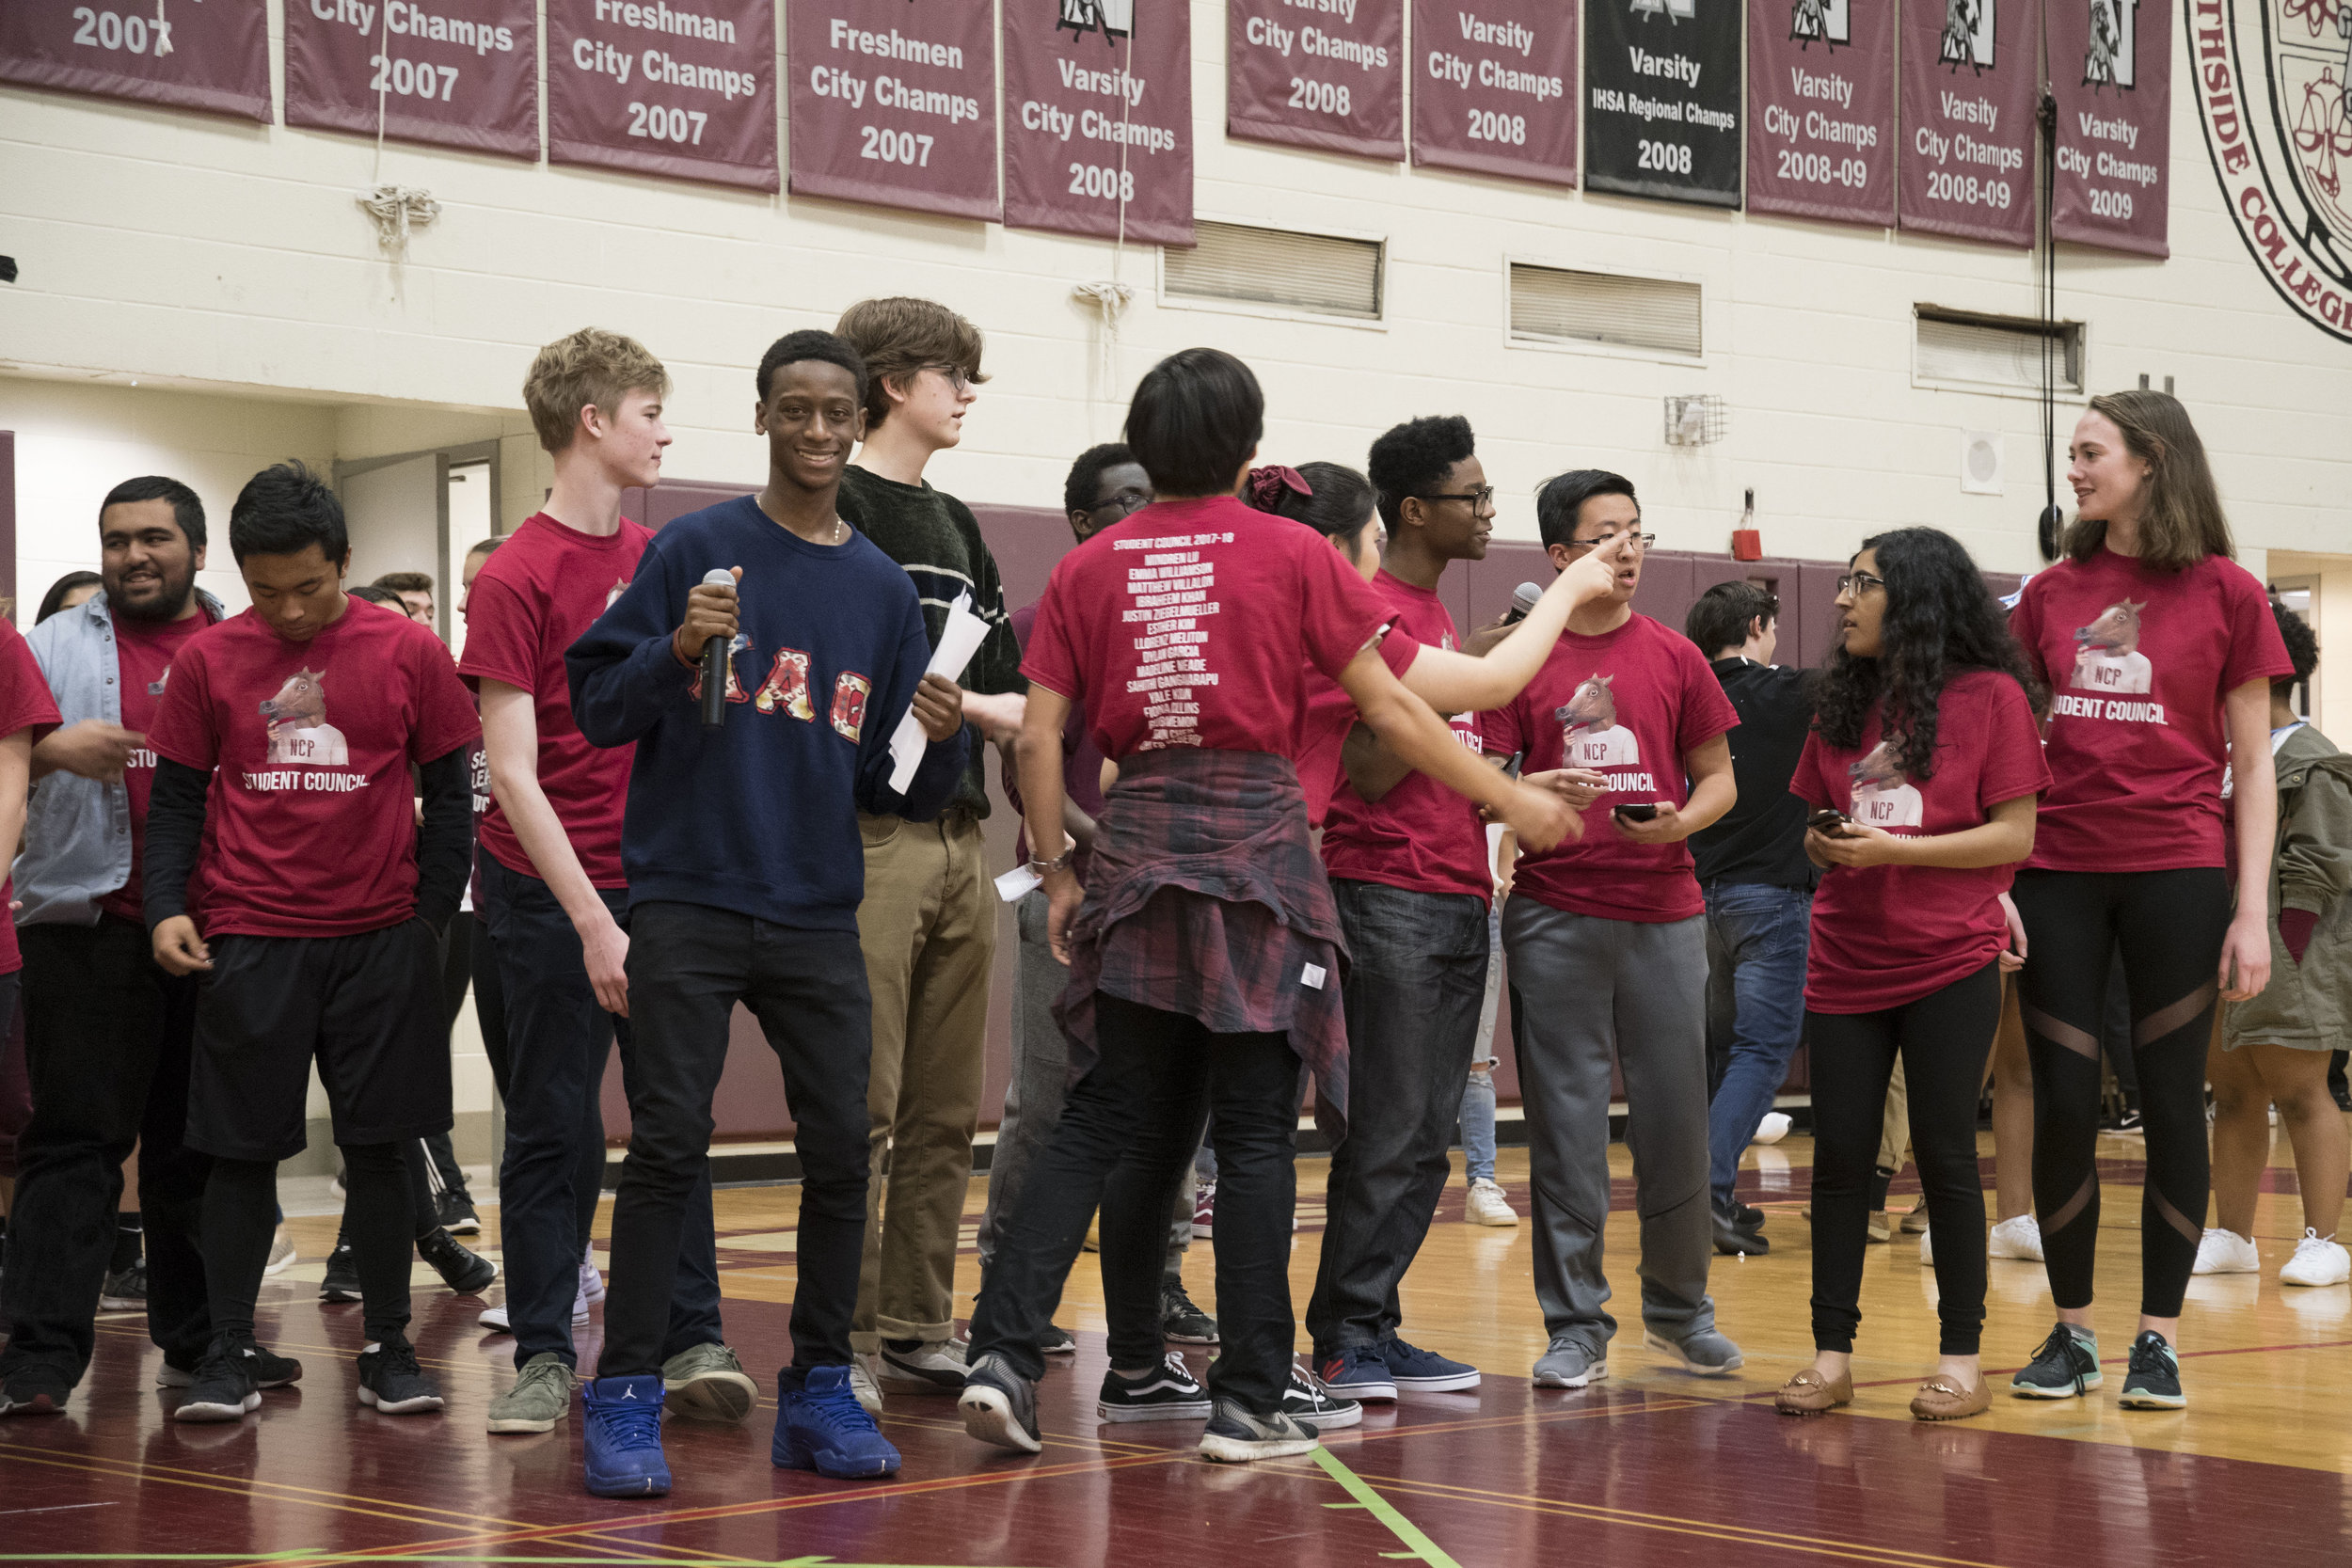 Student Council Comes Together to Announce Nominees